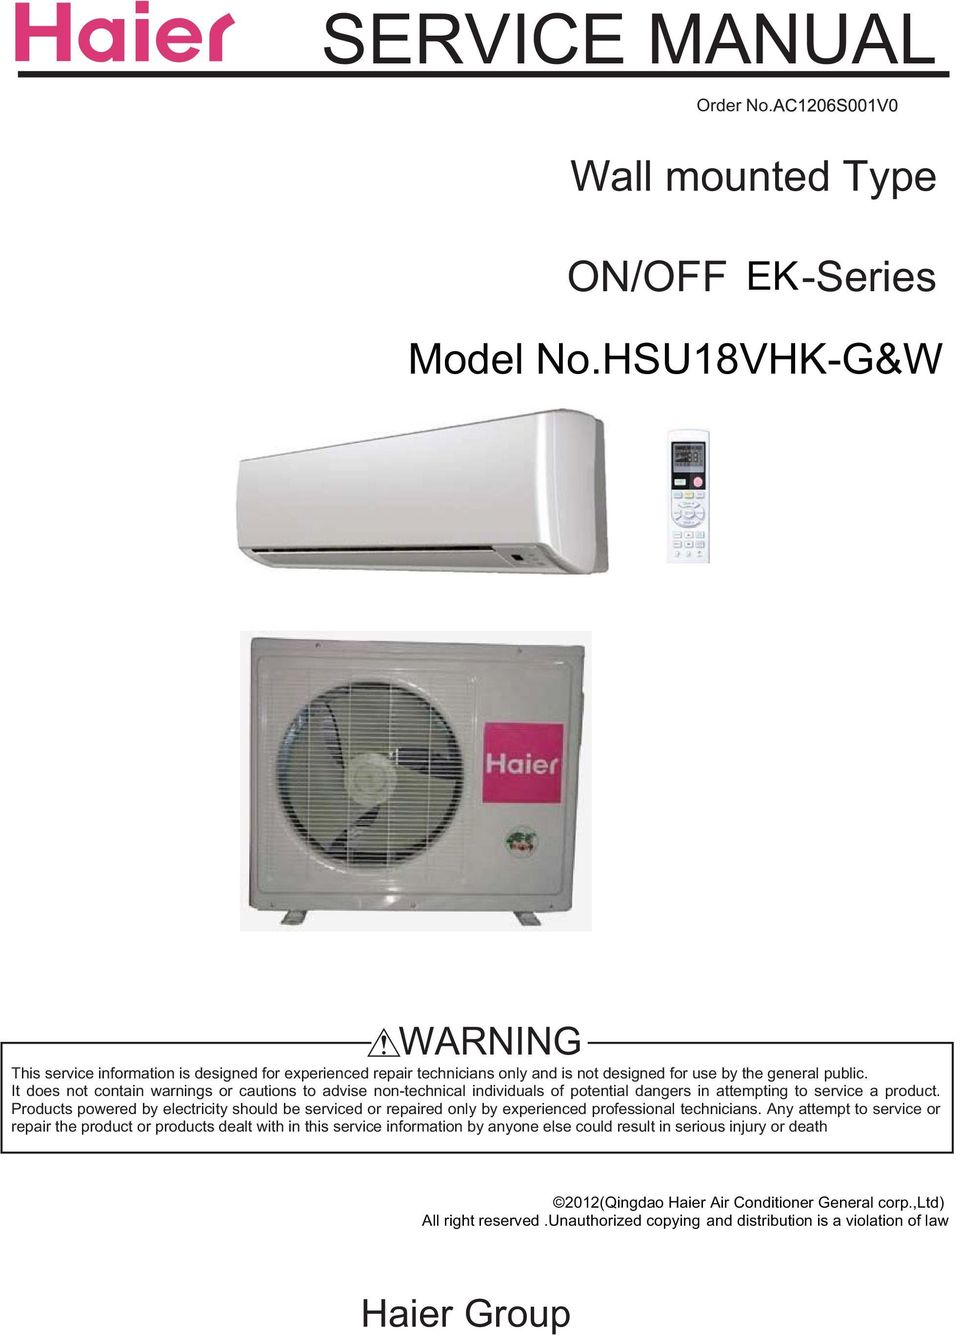 Service Manual Wall Mounted Type Model Nohsu18vhk Gw Warning Haier Air Conditioner Wiring Diagram It Does Not Contain Warnings Or Cautions To Advise Non Technical Individuals Of Potential Dangers